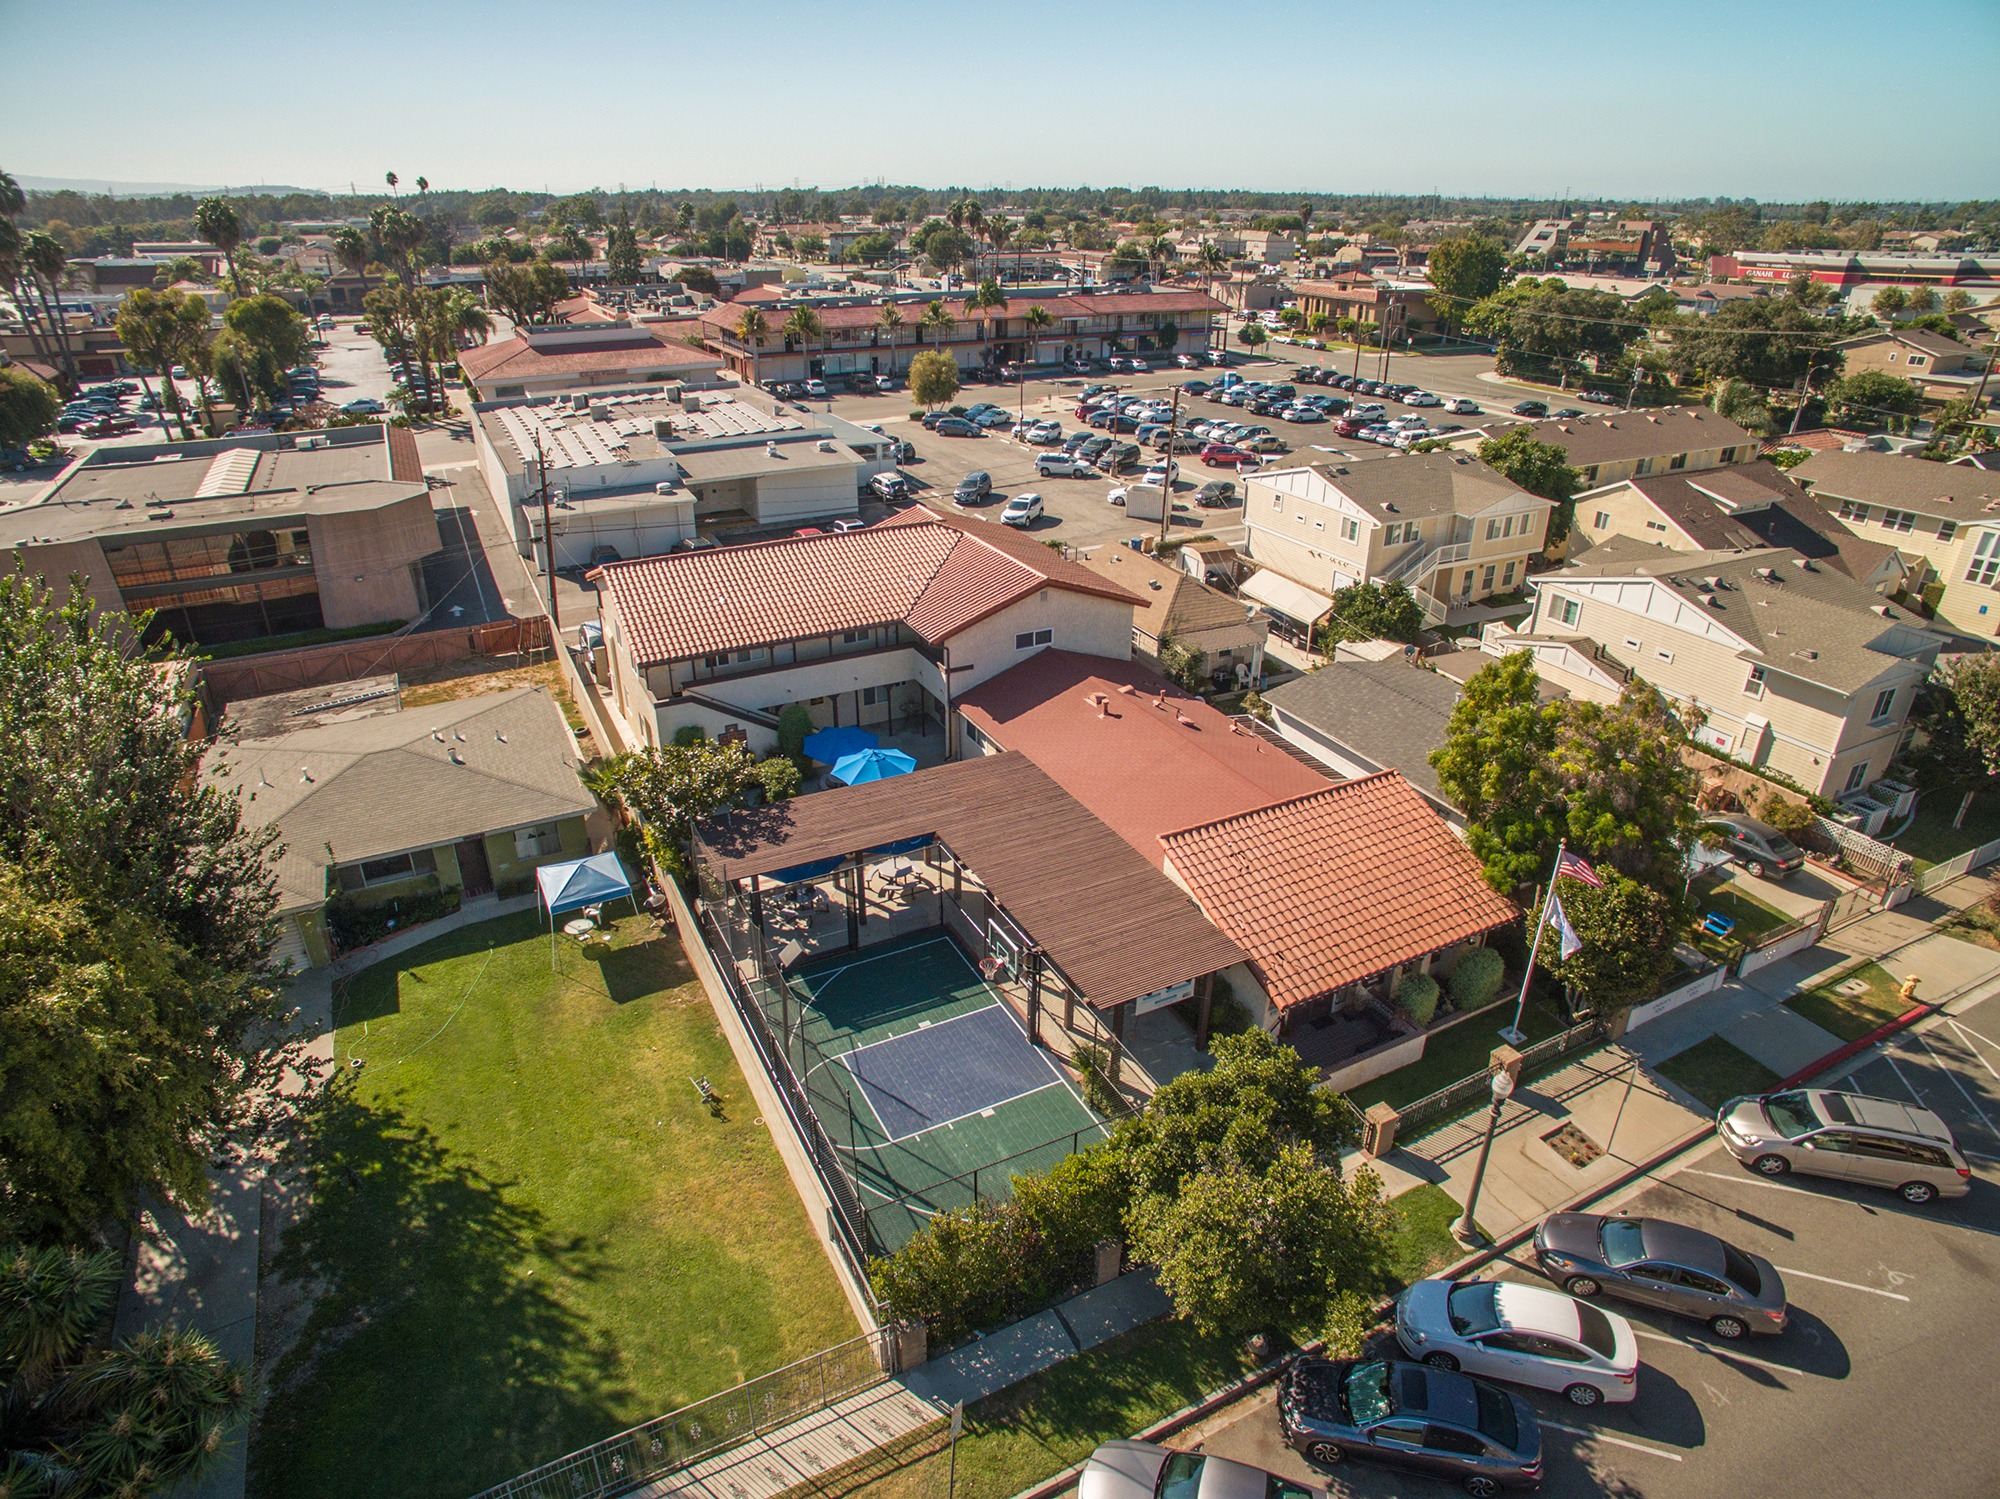 Casa Youth Shelter Aerial